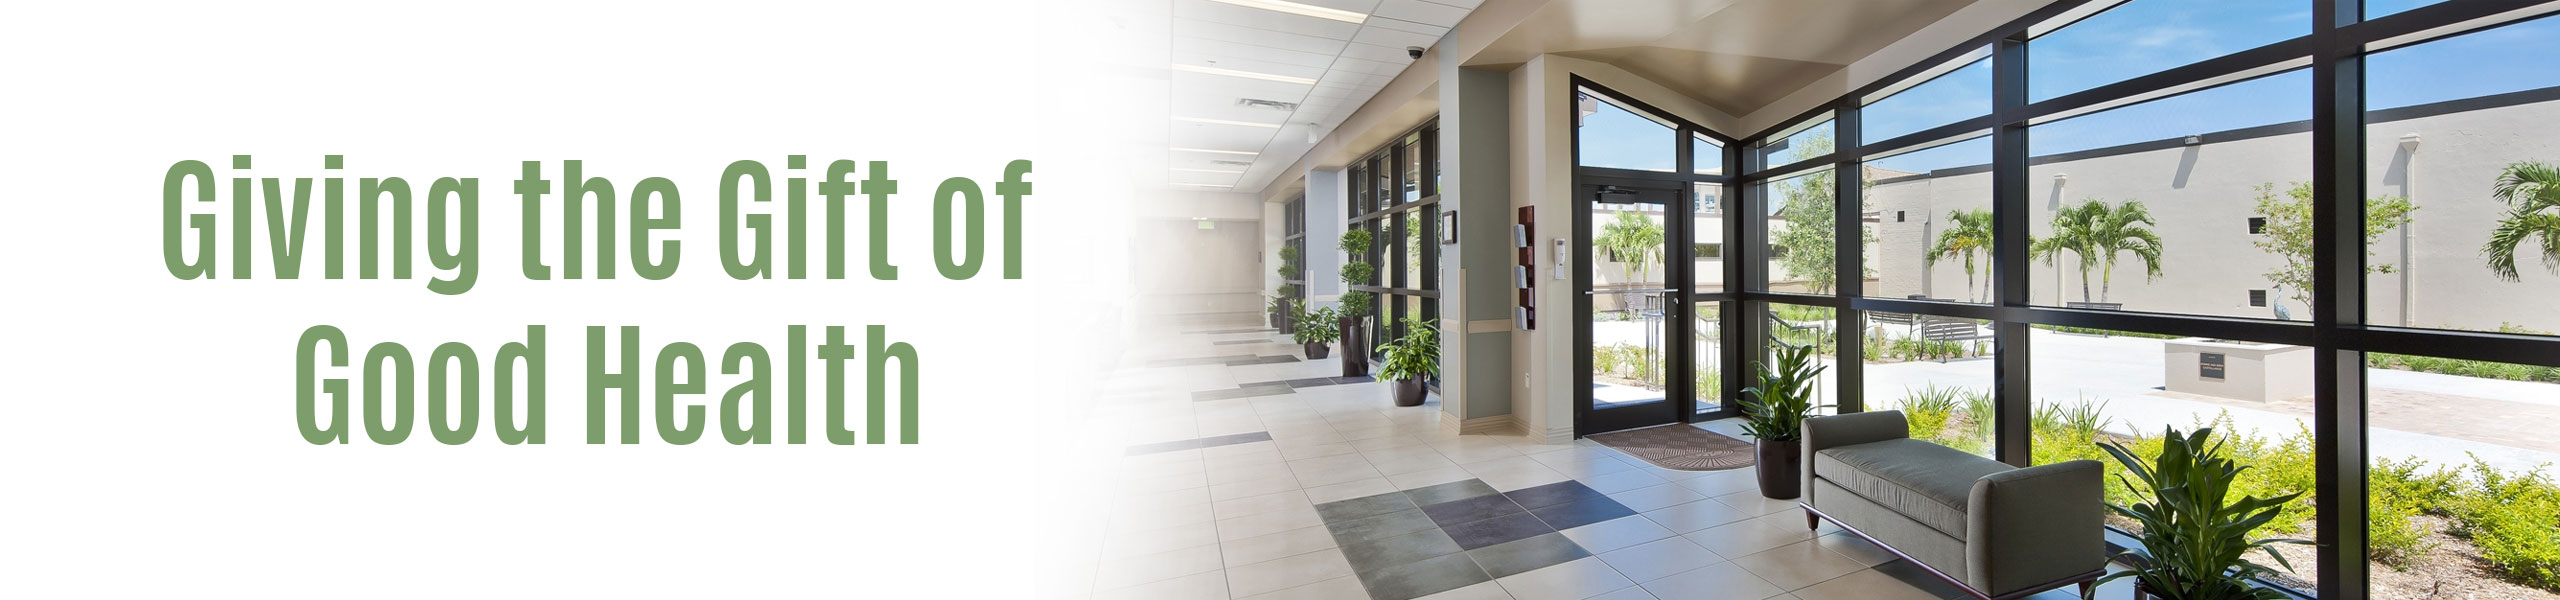 """Picture of The Hendry Regional Center Hospital Lobby Area Banner says: """"Giving The Gift of Good Health"""""""